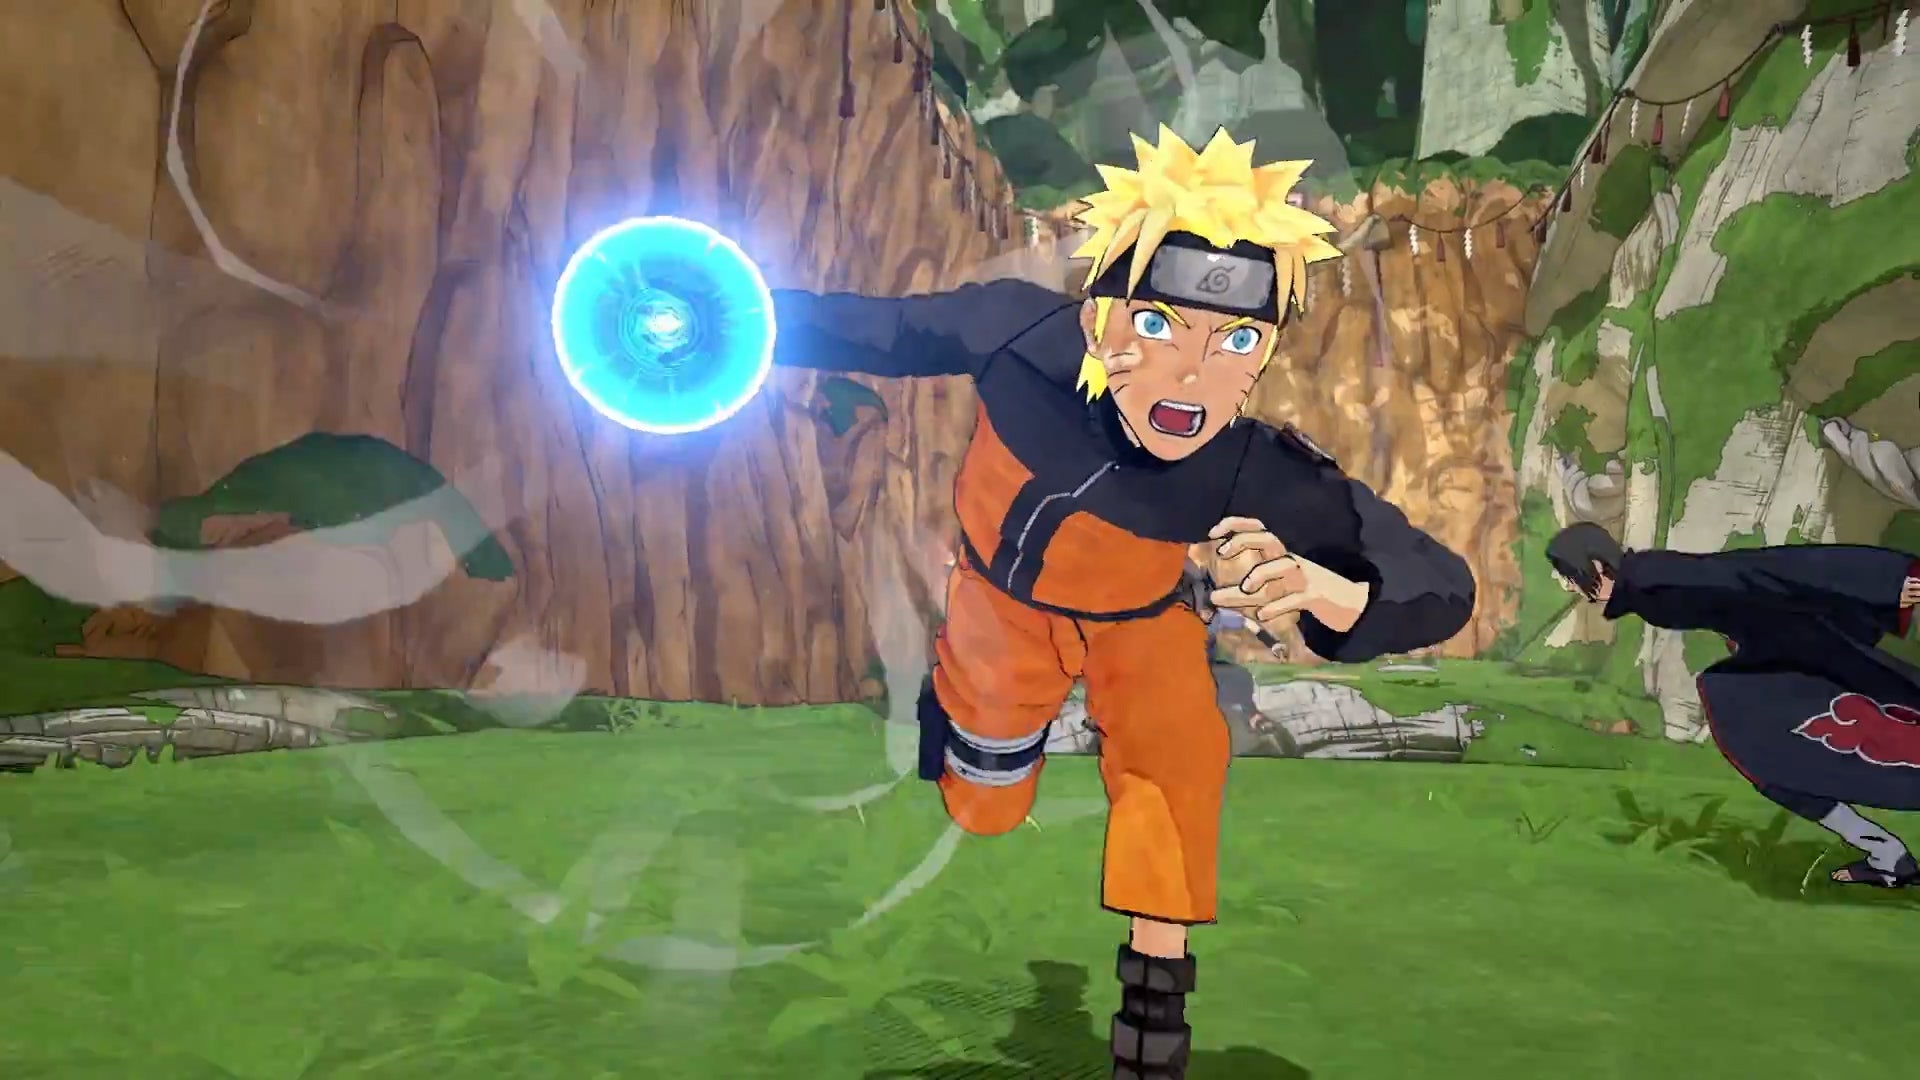 Naruto dating games online in Australia